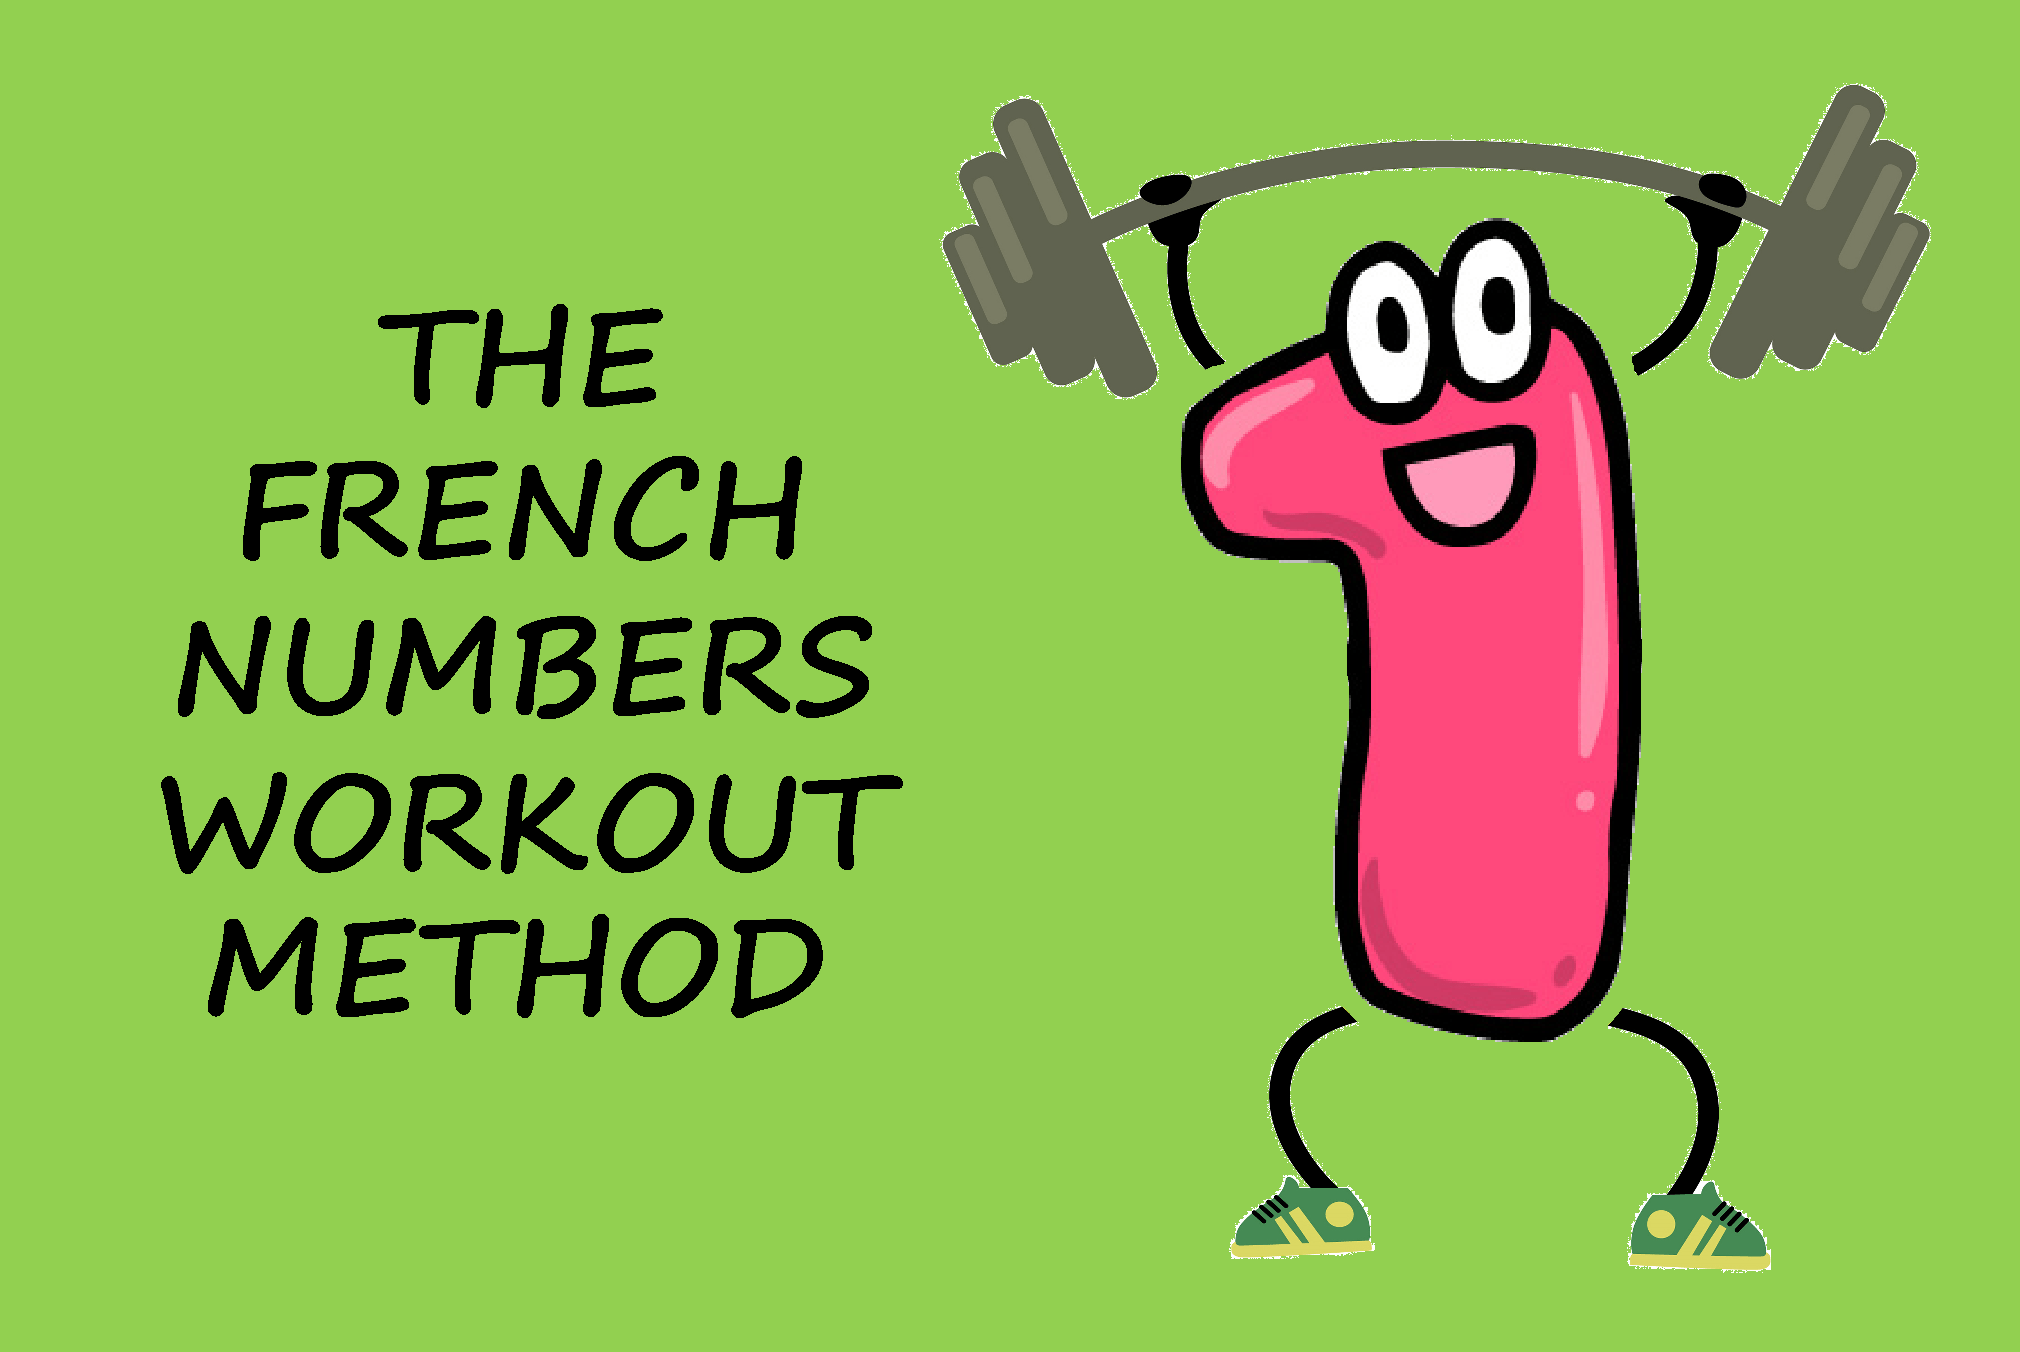 The French Numbers Workout Method